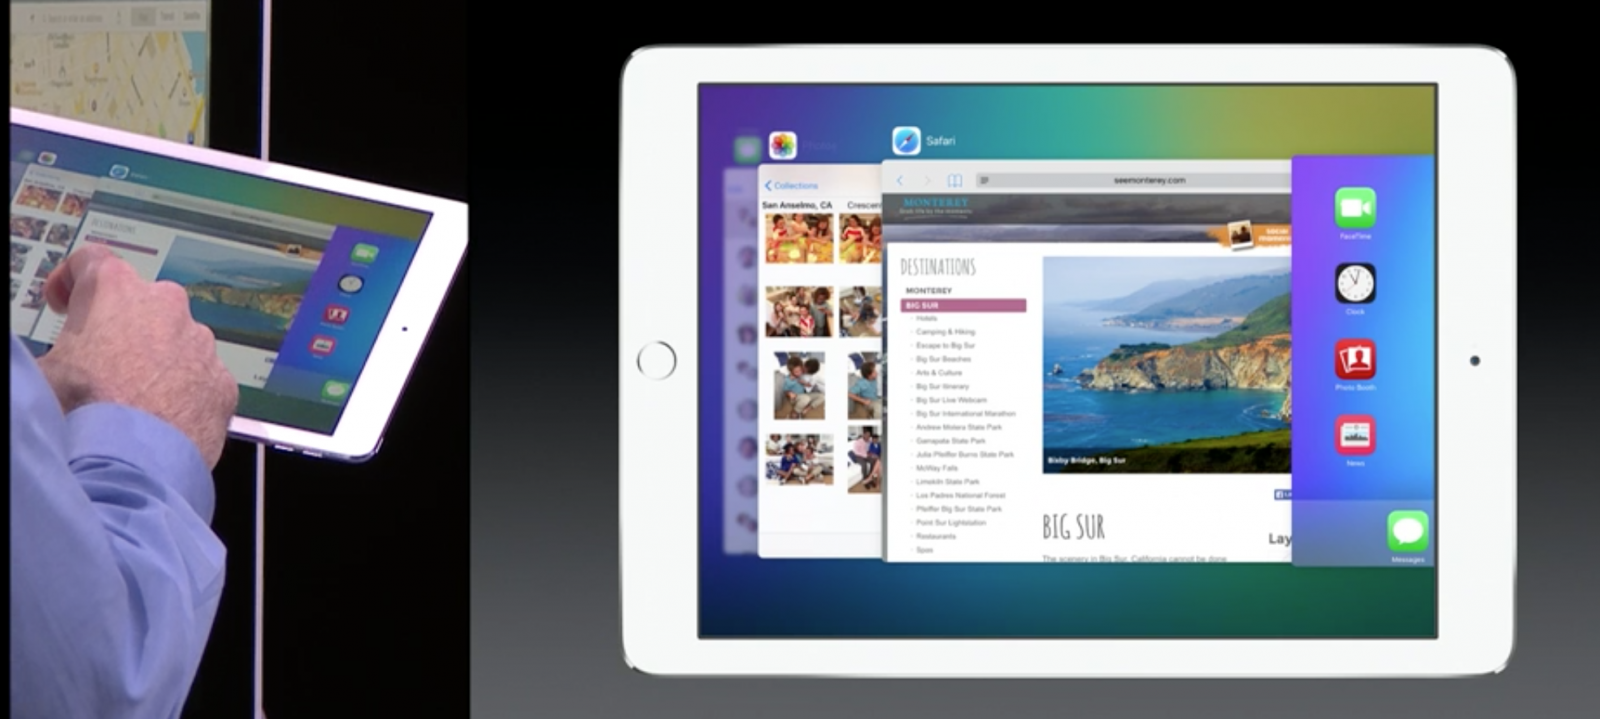 iOS 9 on iPad with app switcher